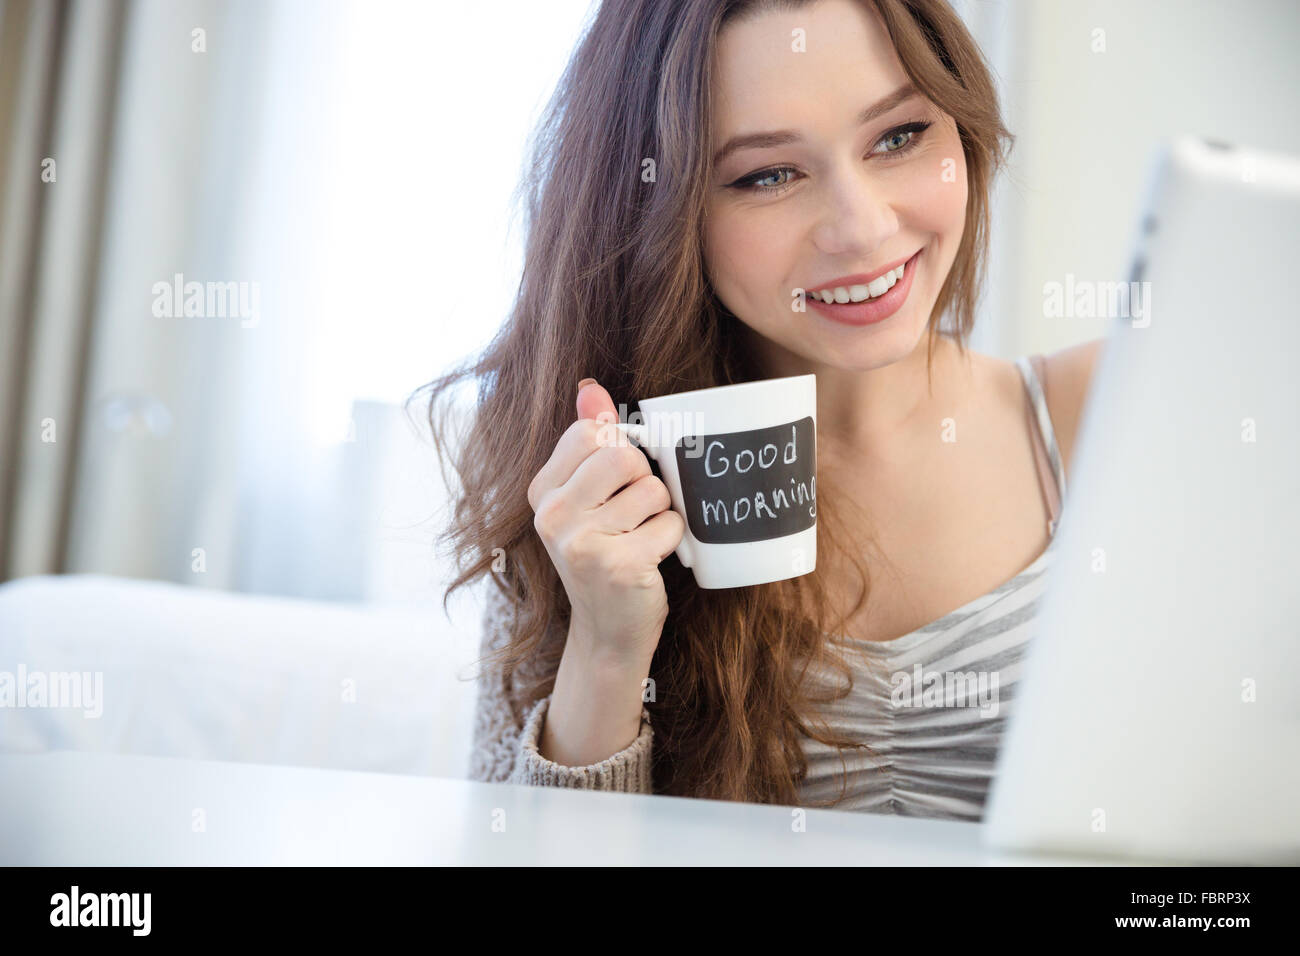 Smiling charming young woman using tablet and drinking coffee from white mug with black area for writing - Stock Image